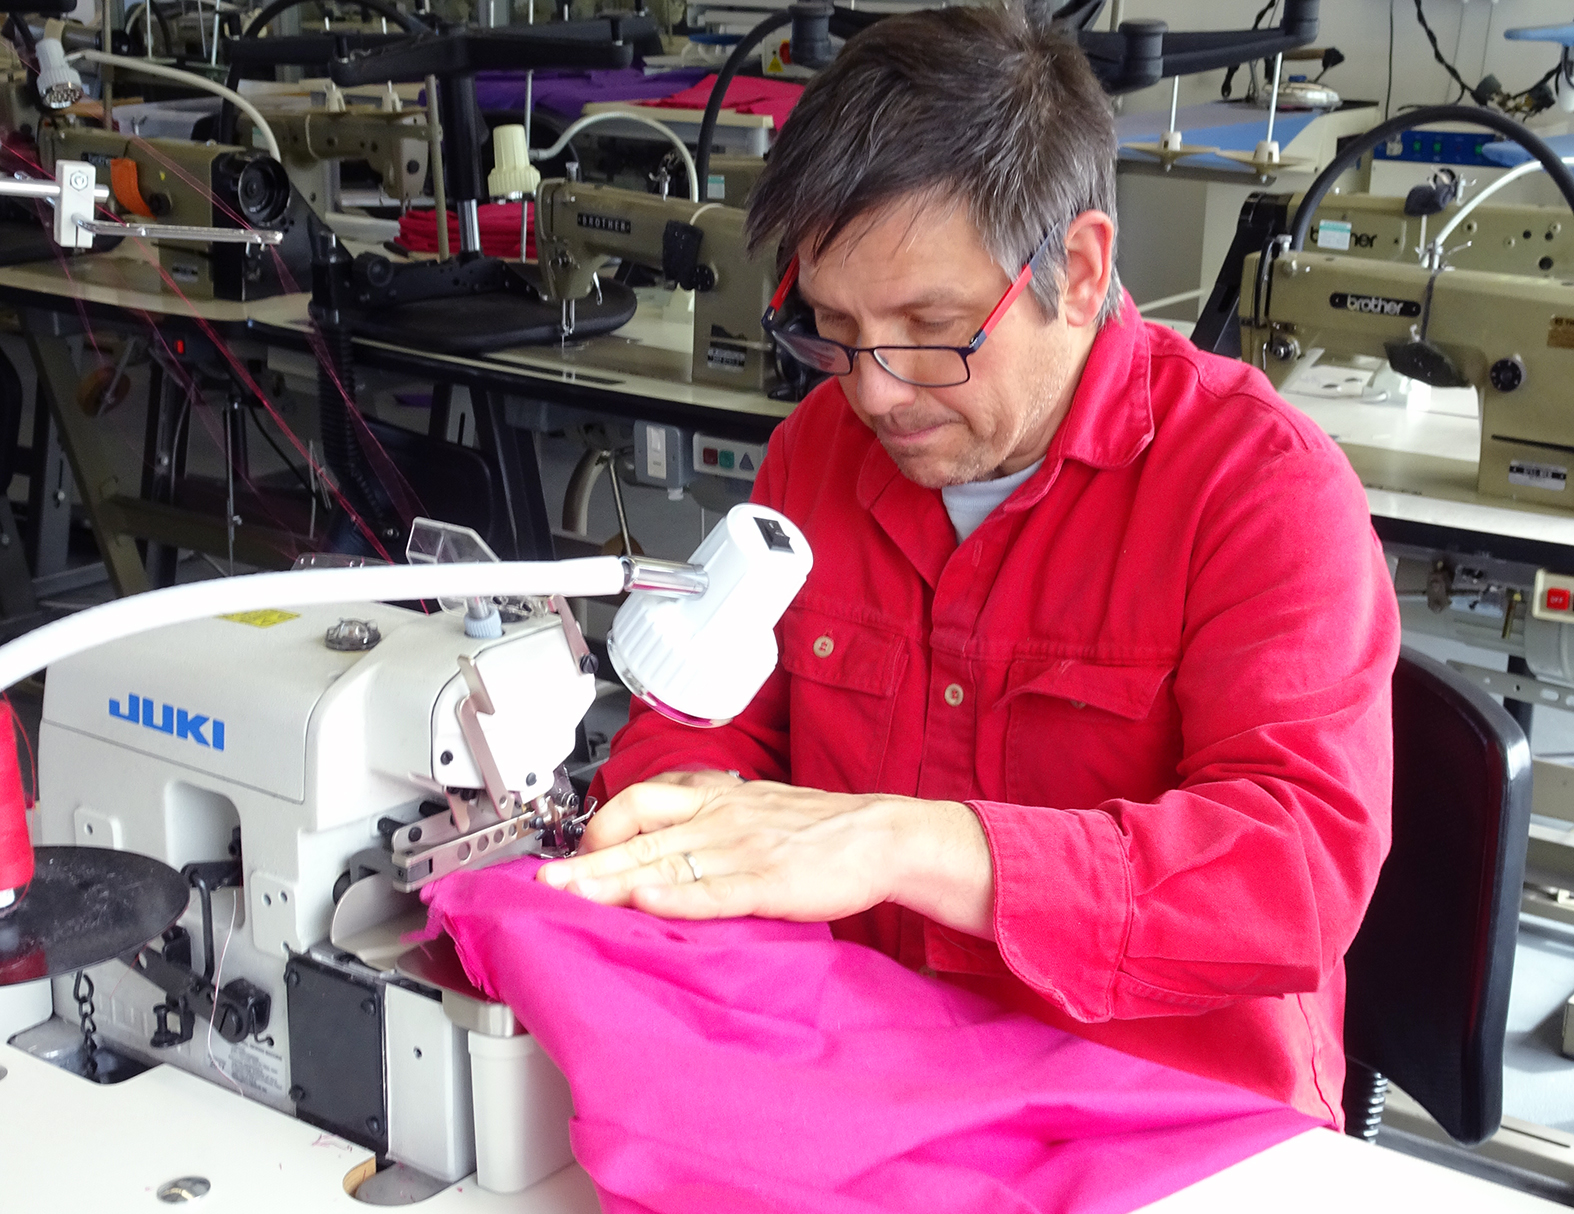 Man using overlocker sewing machine